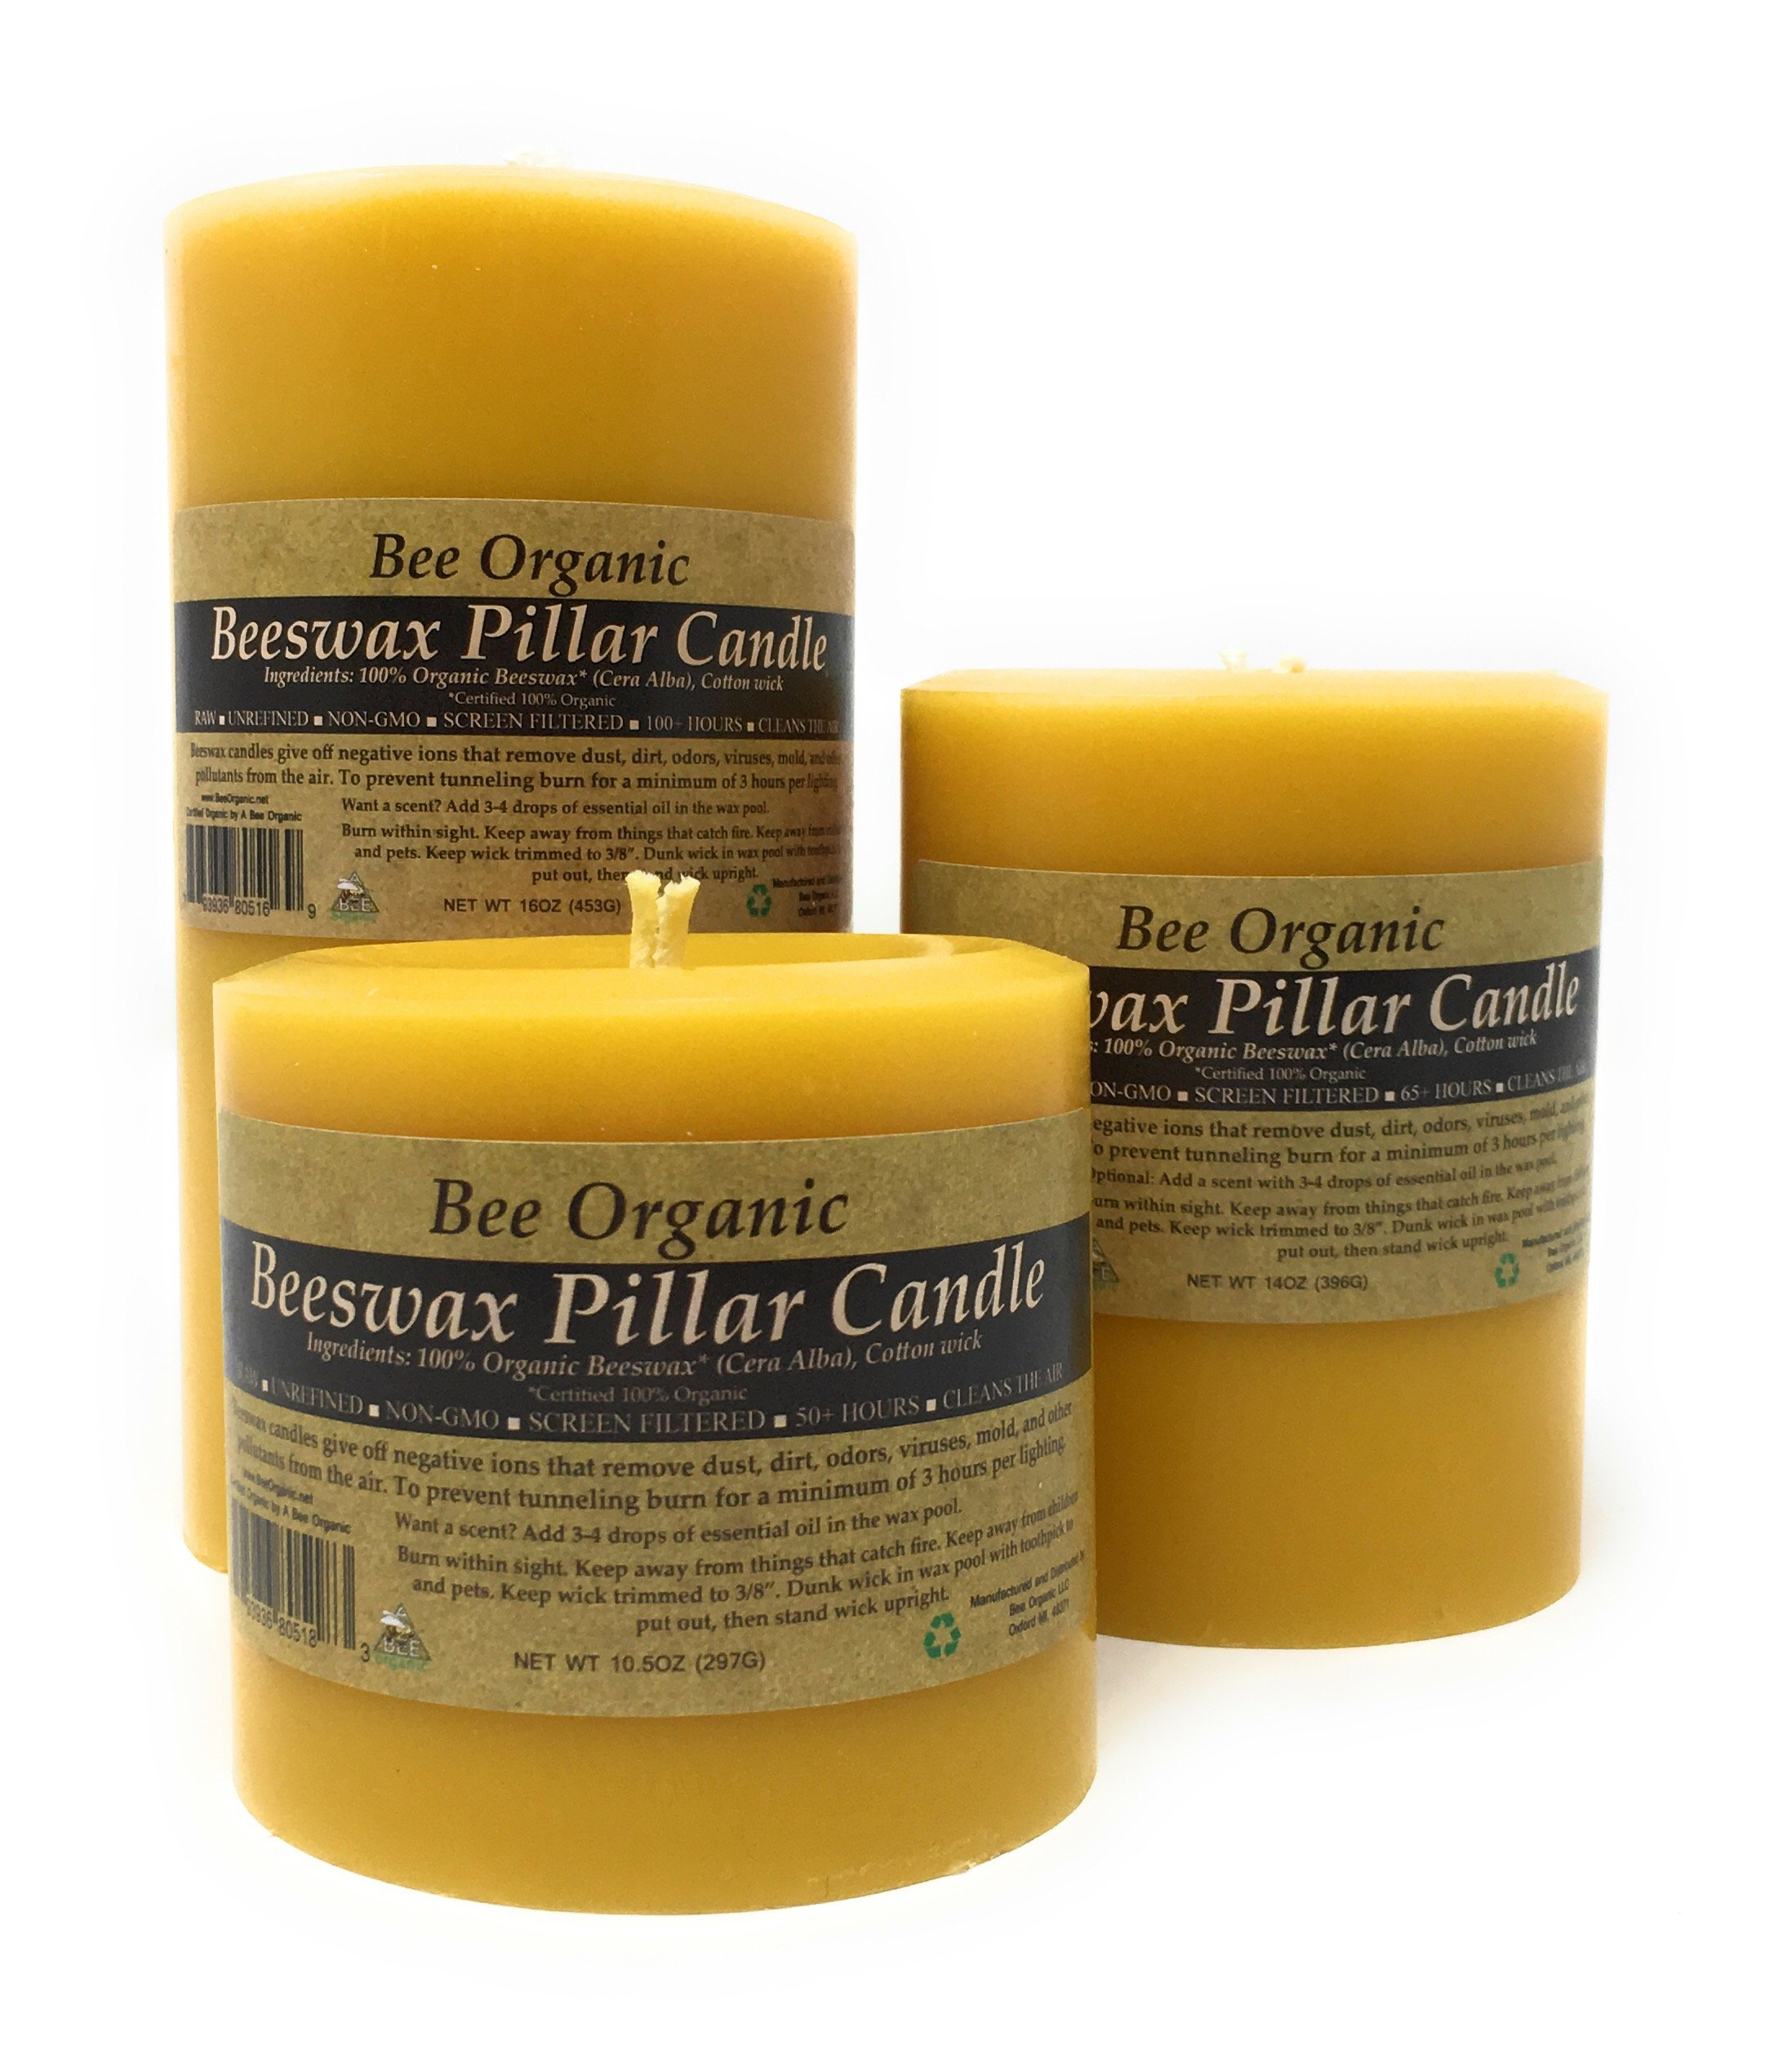 100% Organic Beeswax Pillar Candle, Non-GMO, Raw, Unrefined and Screen Filtered. Unbleached Cotton Wick. (3 x 6) by Bee Organic (Image #4)